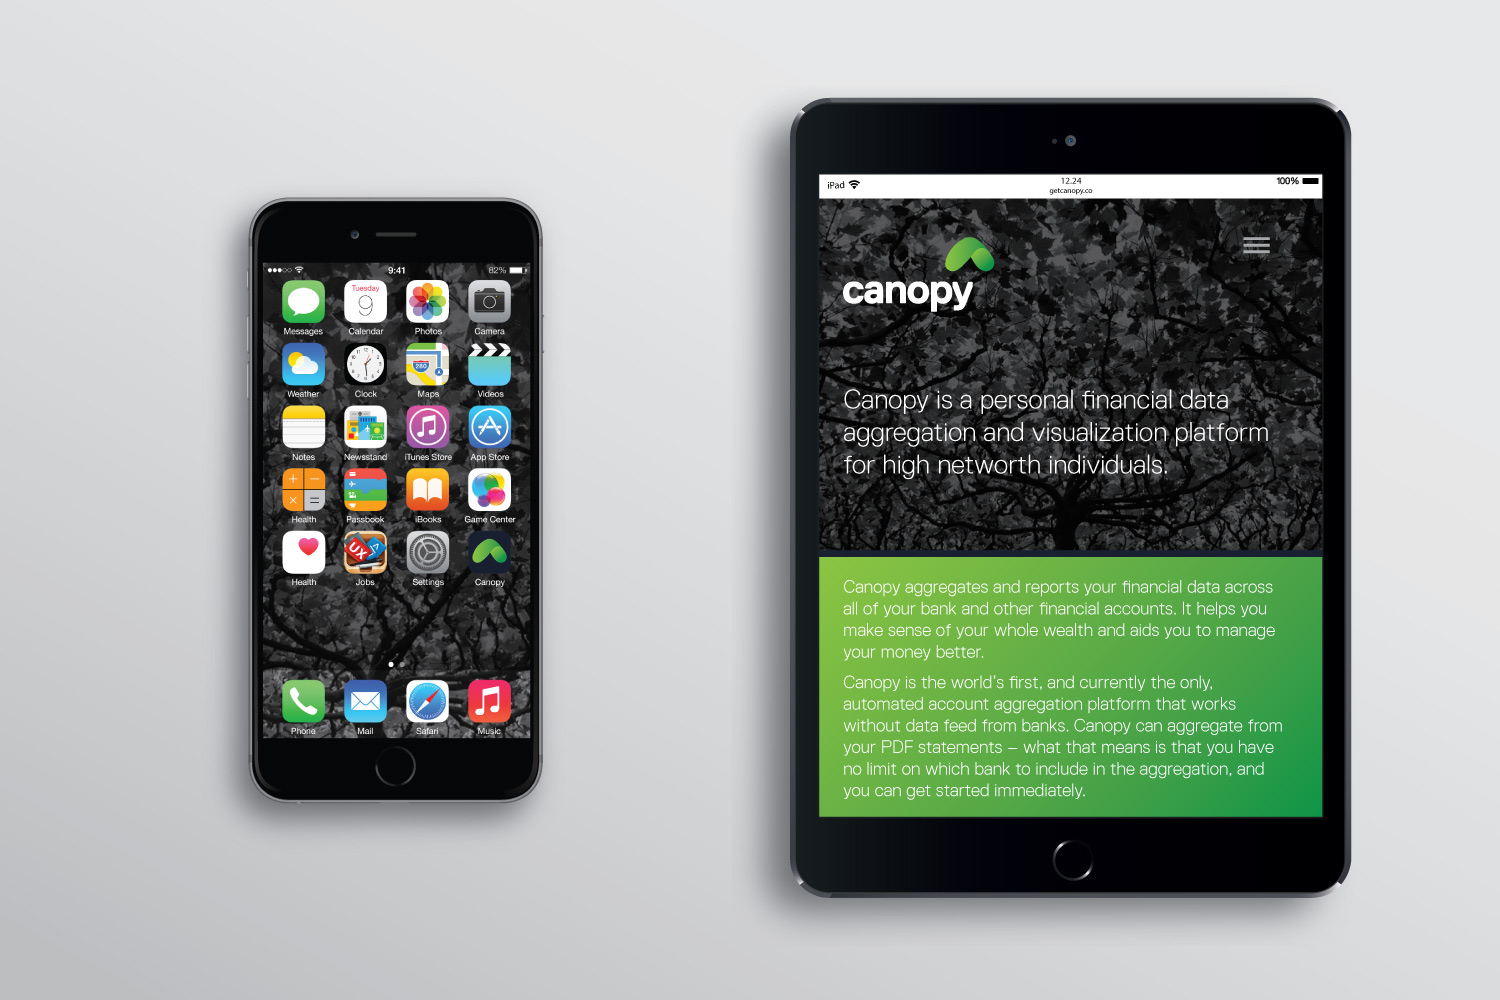 canopy icons and interface